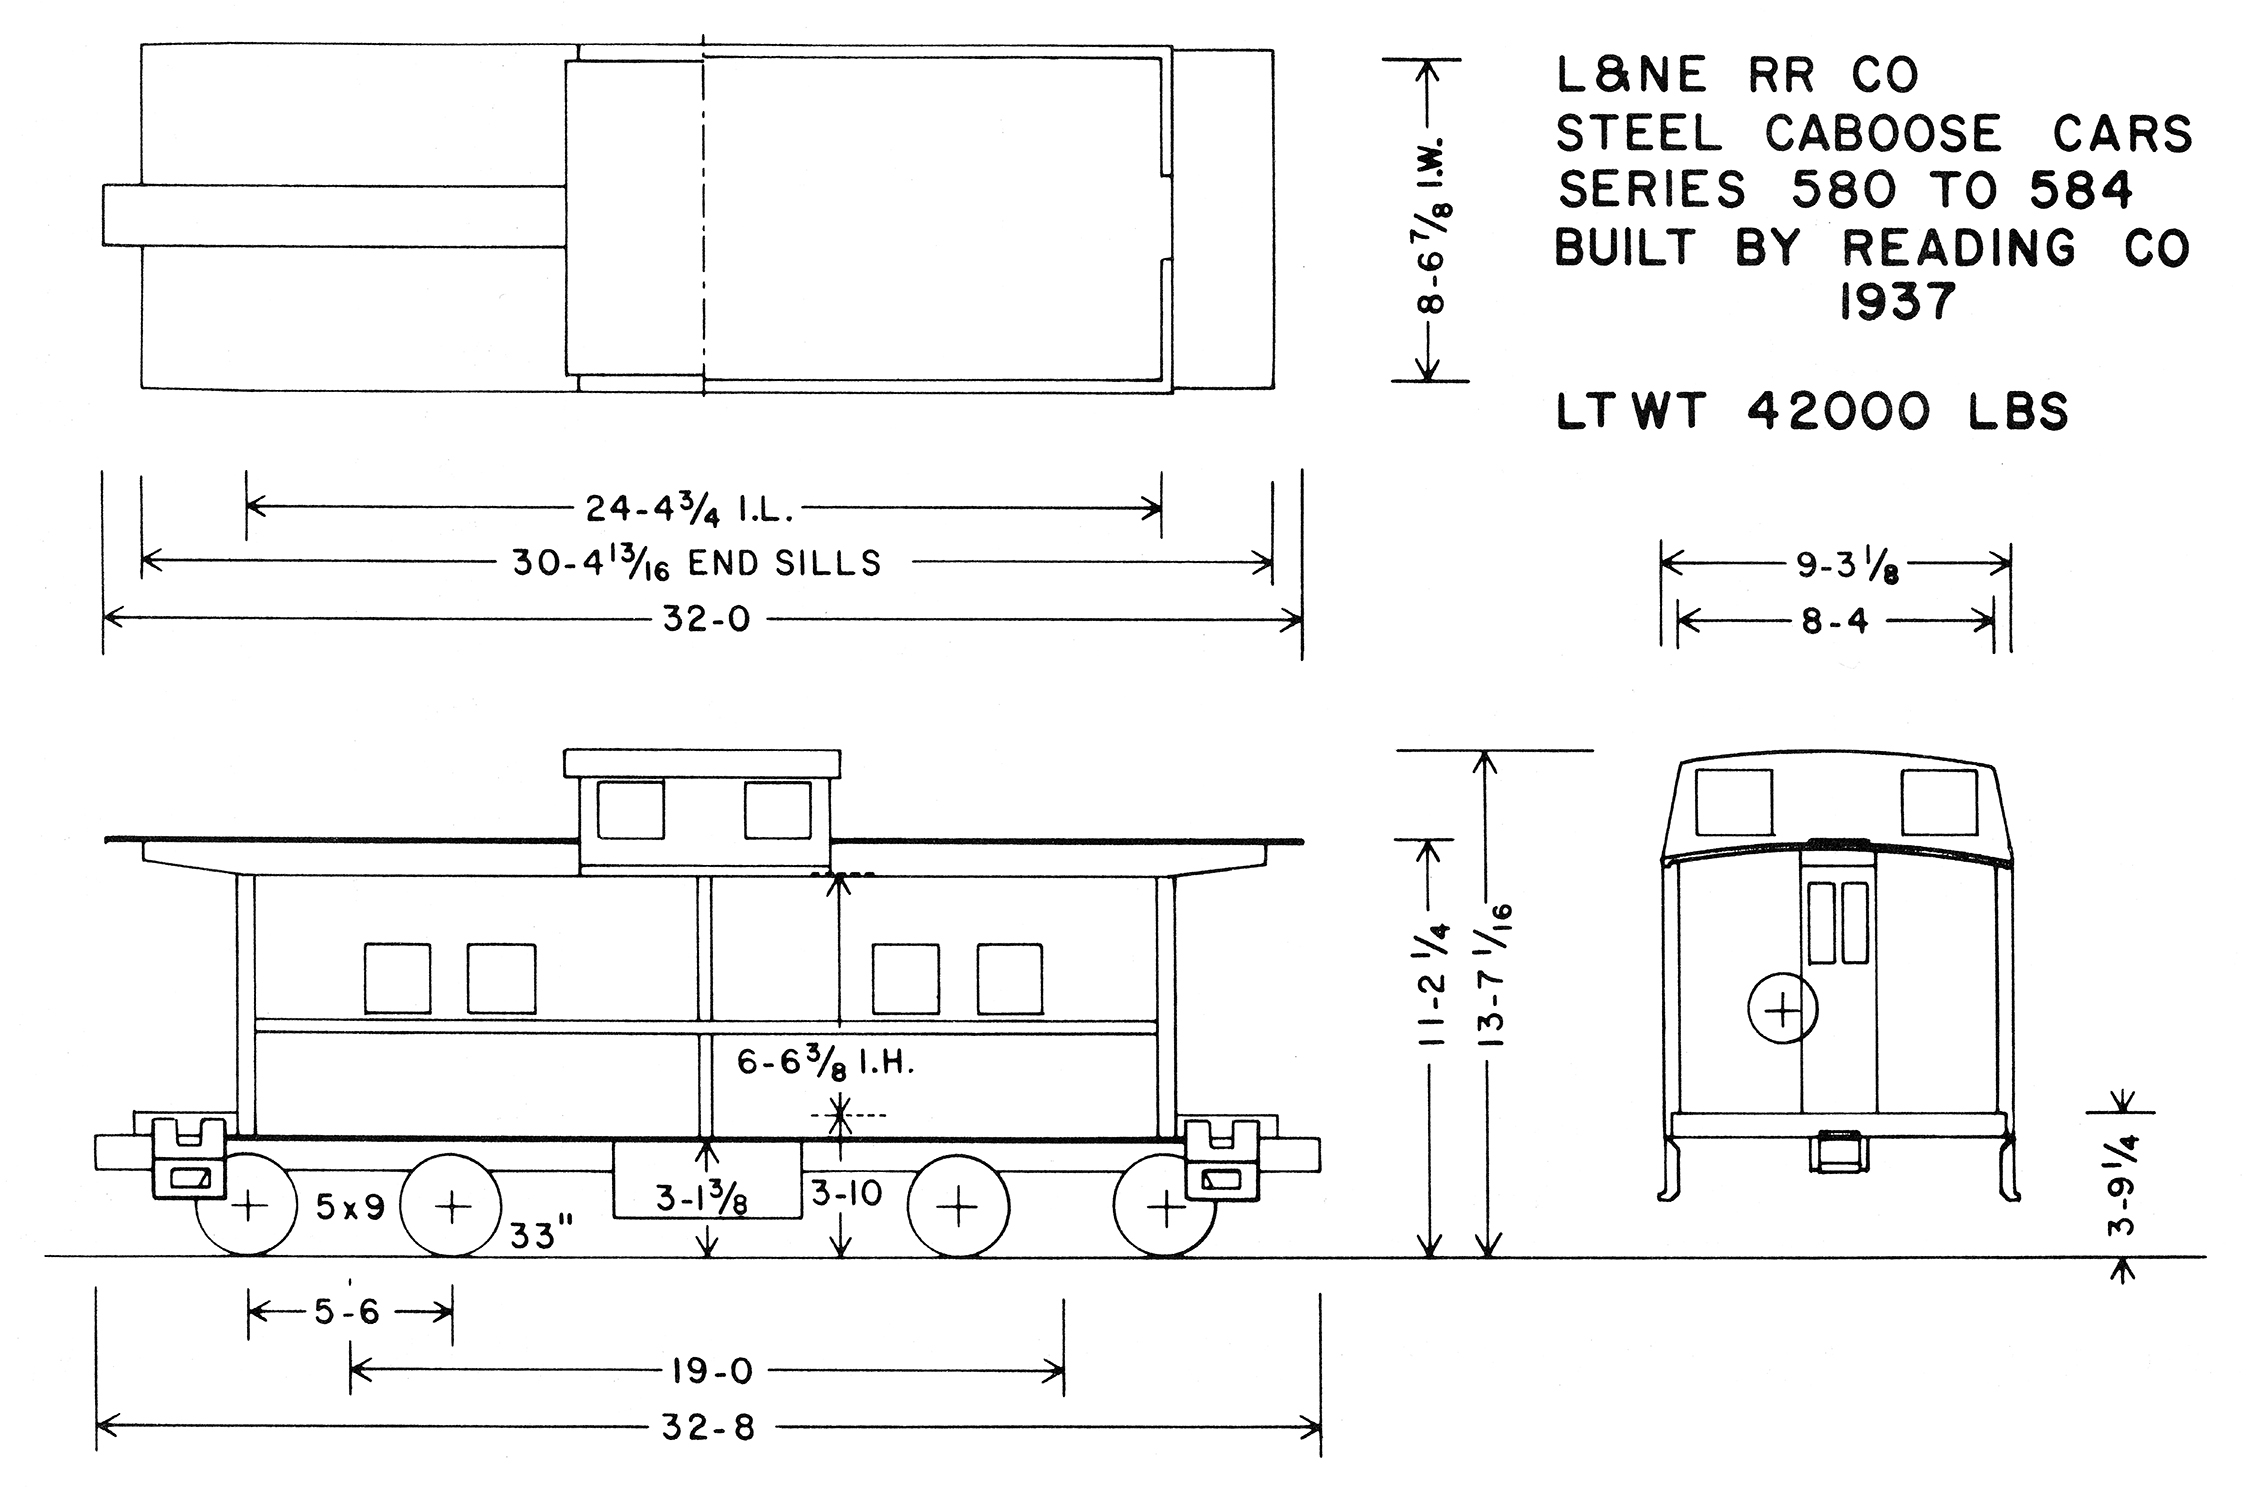 Drawing for L&NE caboose No. 580.  (Eric A. Neubauer drawing)